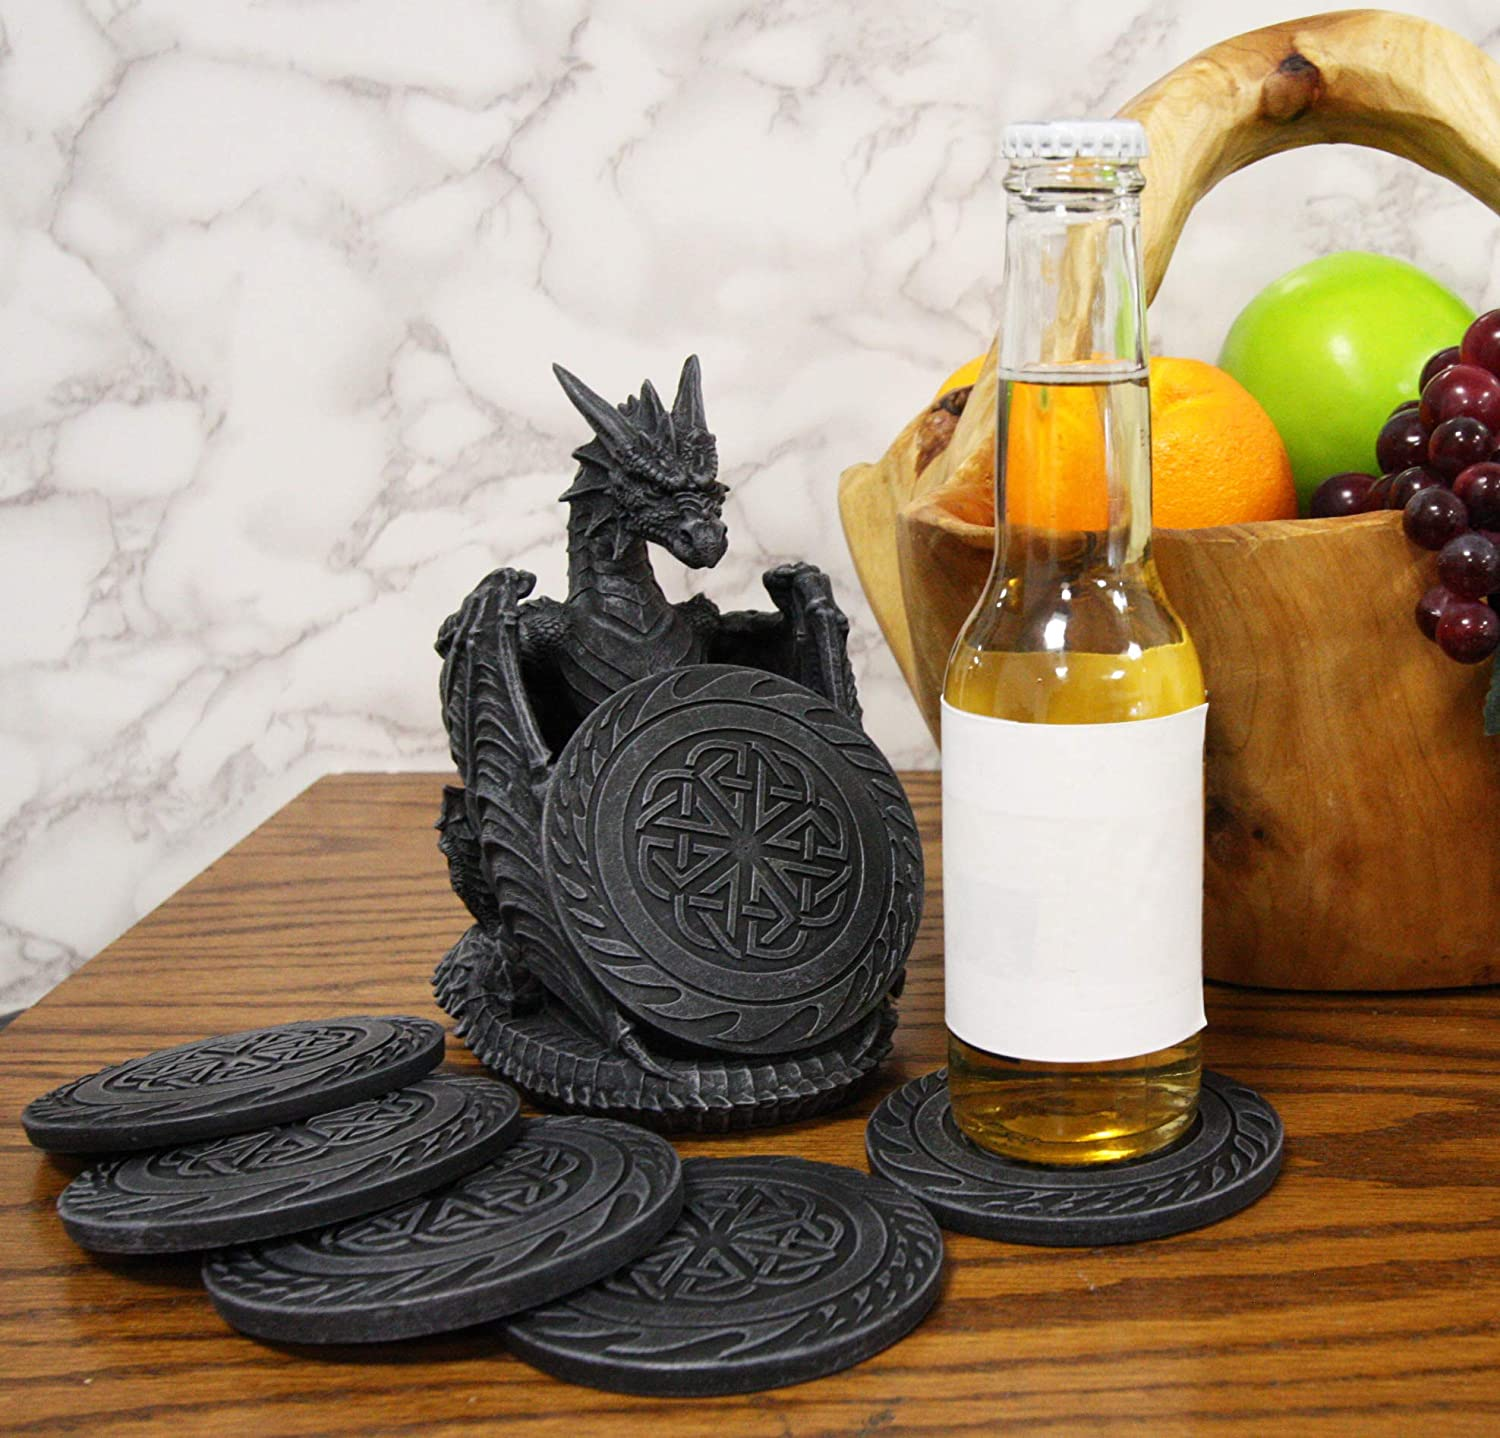 Ebros Gift Gothic Winged Guardian Dragon with Celtic Knotwork Coaster Set Figurine Holder with 6 Round Coasters 6.25